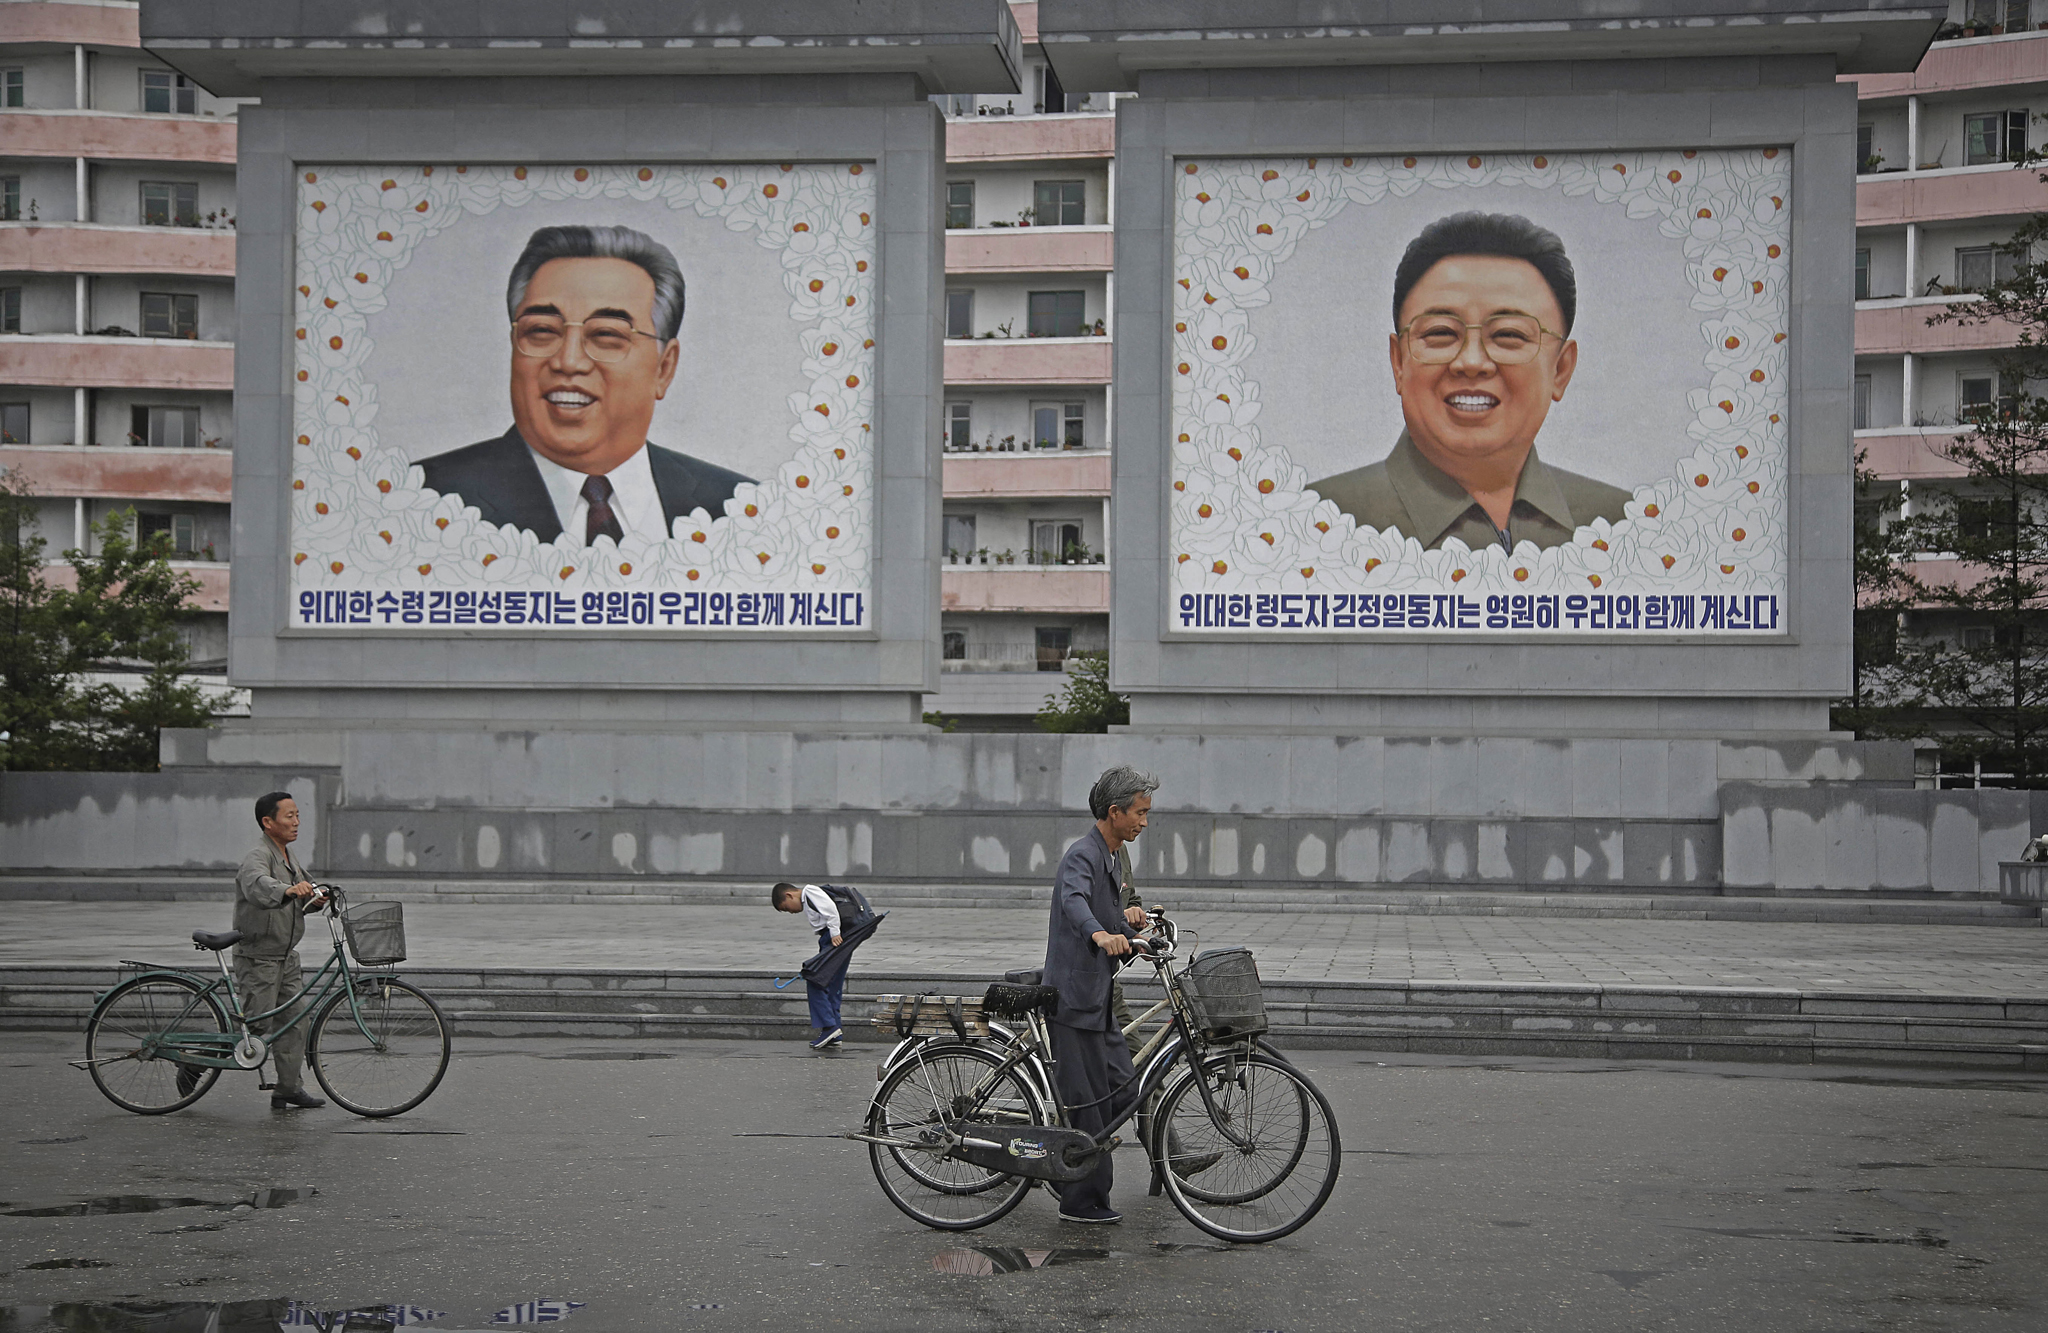 North Koreans push their bicycles past giant portraits of the late North Korean leaders Kim Il Sung and Kim Jong Il at the end of a work day on Wednesday, June 22, 2016, in Wonsan, North Korea.